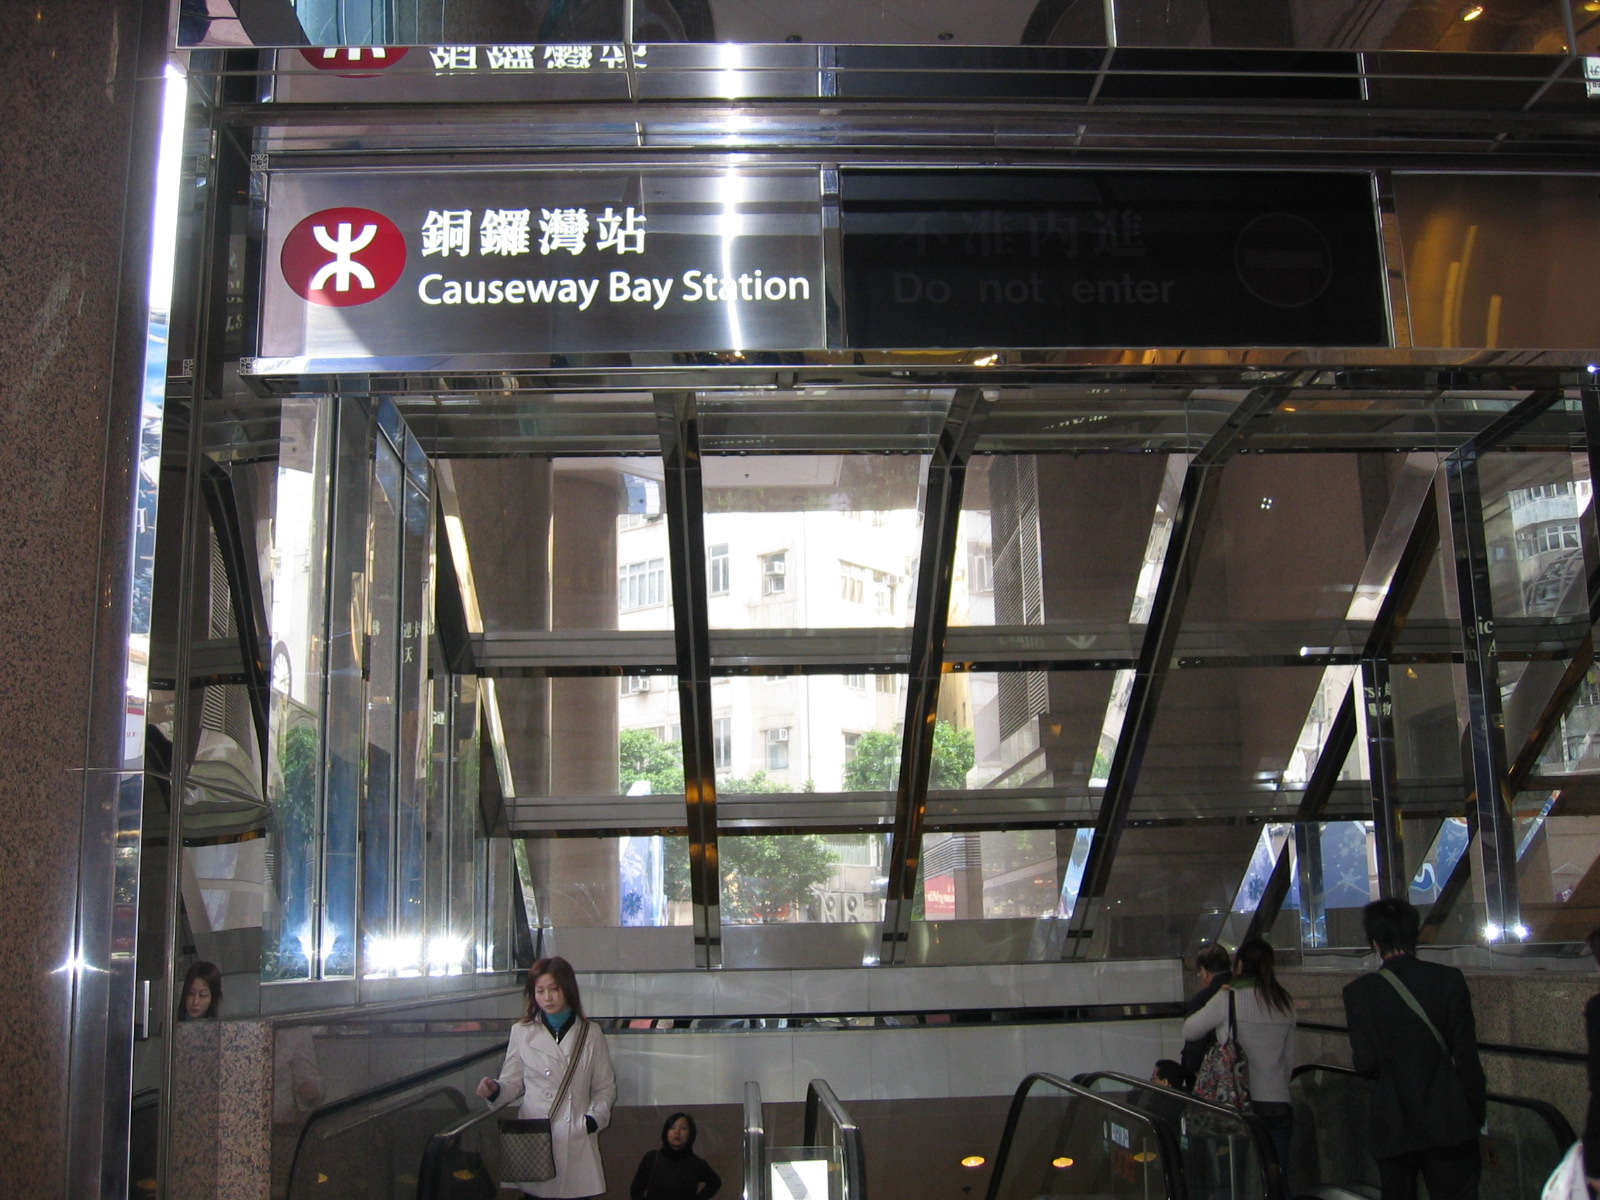 File:Causeway Bay MTR Exit A.JPG - Wikipedia, the free encyclopedia